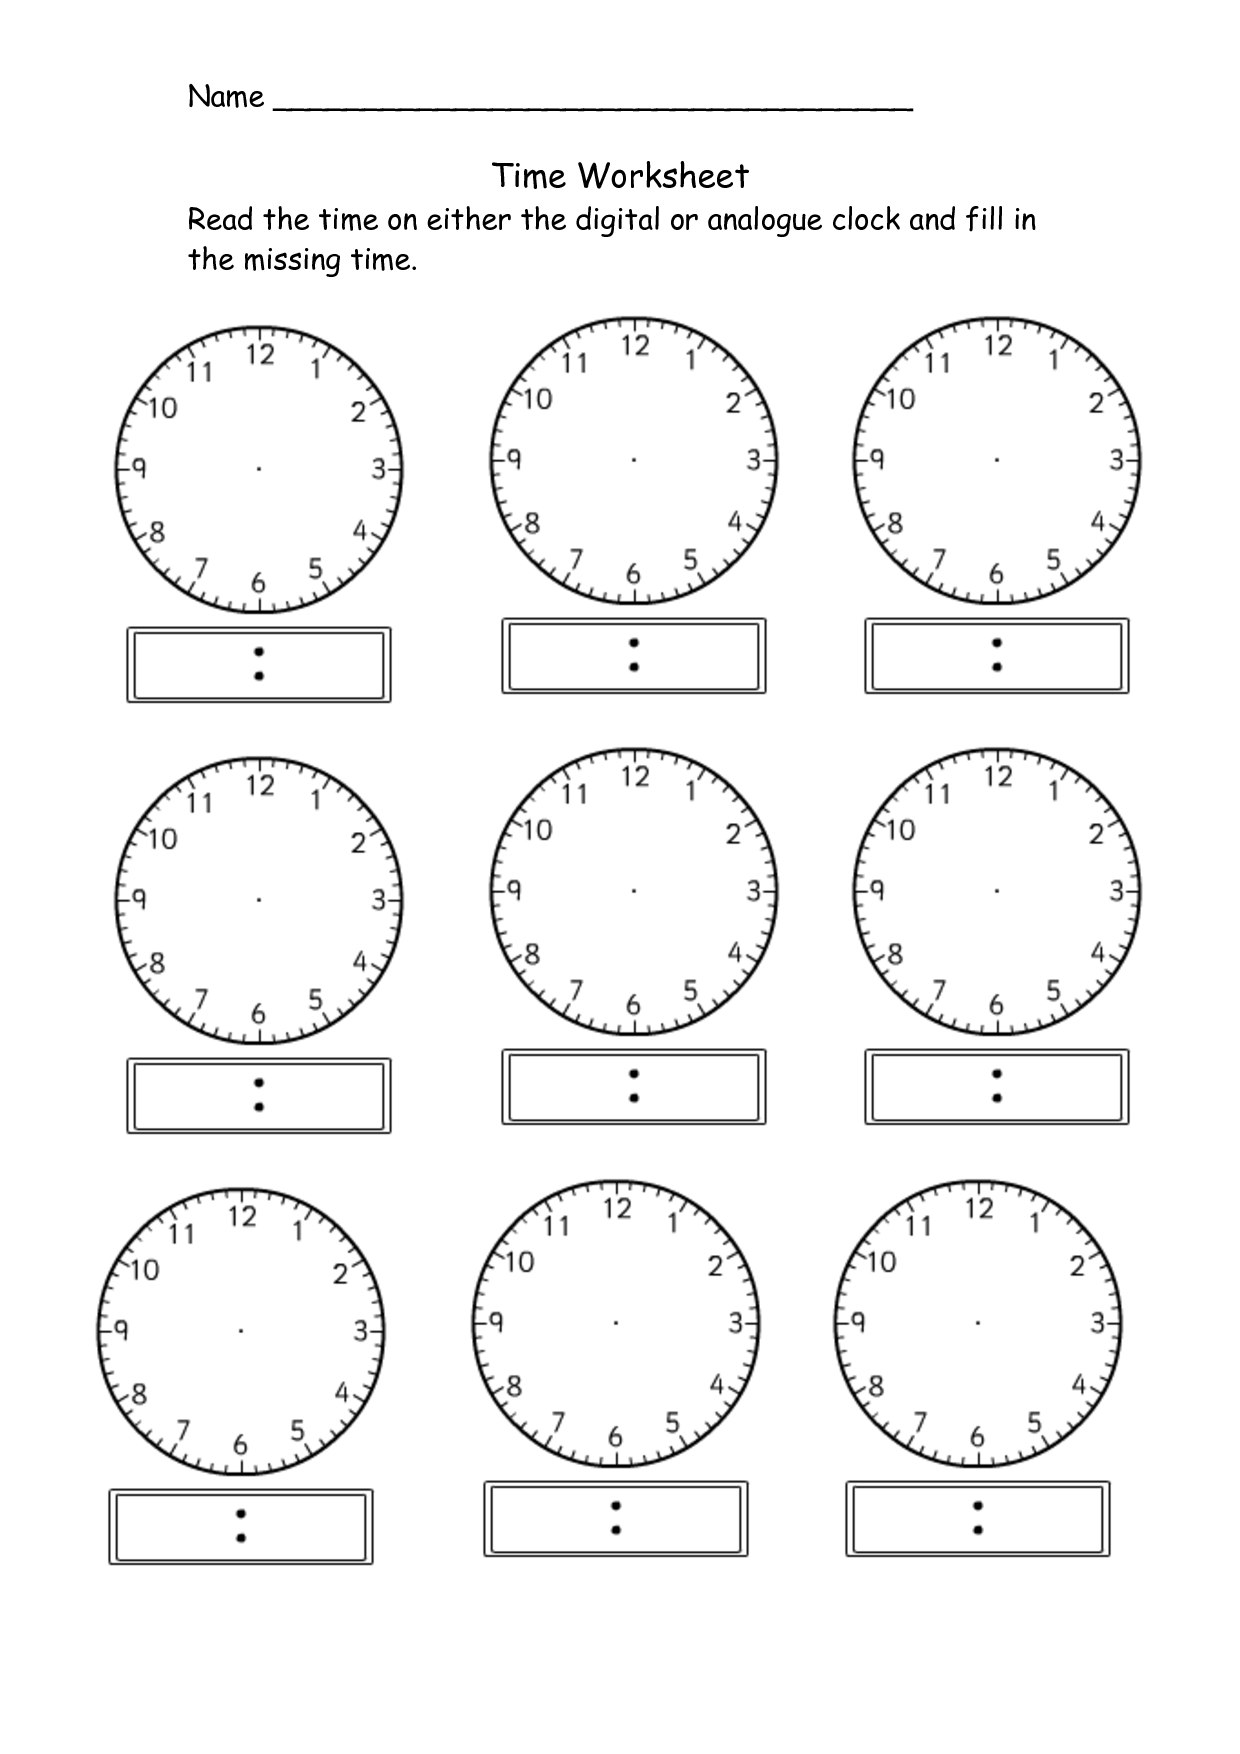 Worksheets Telling Time To The Hour And Half Hour Worksheets blank clock worksheet telling time kiddo shelter education shelter